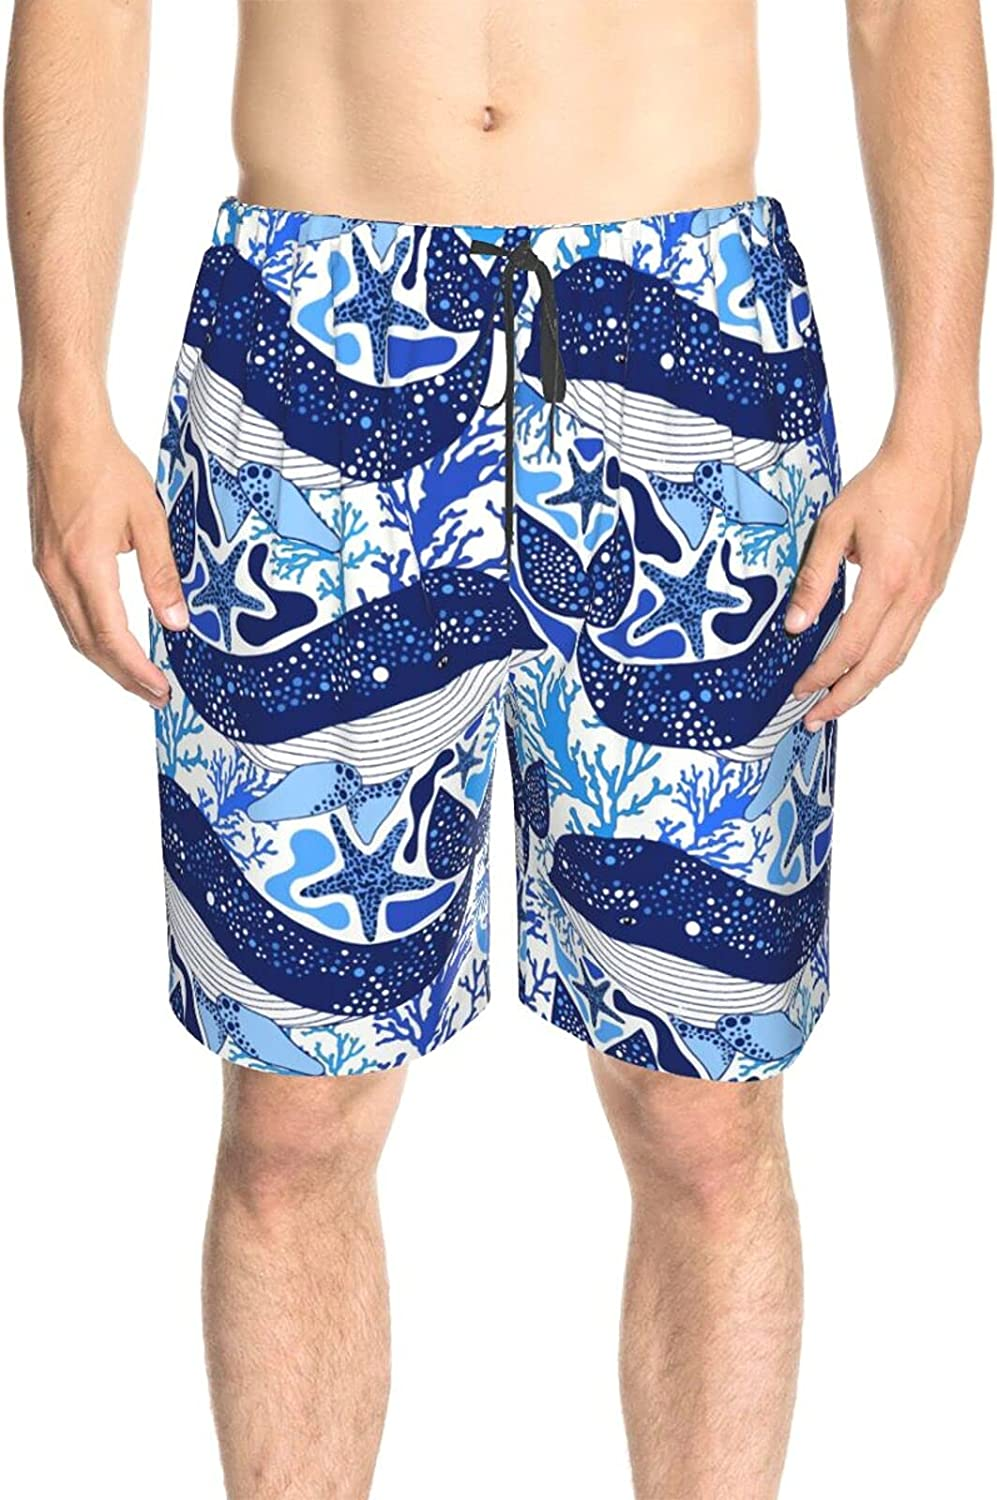 JINJUELS Men's Swim Trunks Whales Nautical Print Bathing Suit Boardshorts Quick Dry Cool Board Shorts Swimwear with Pockets